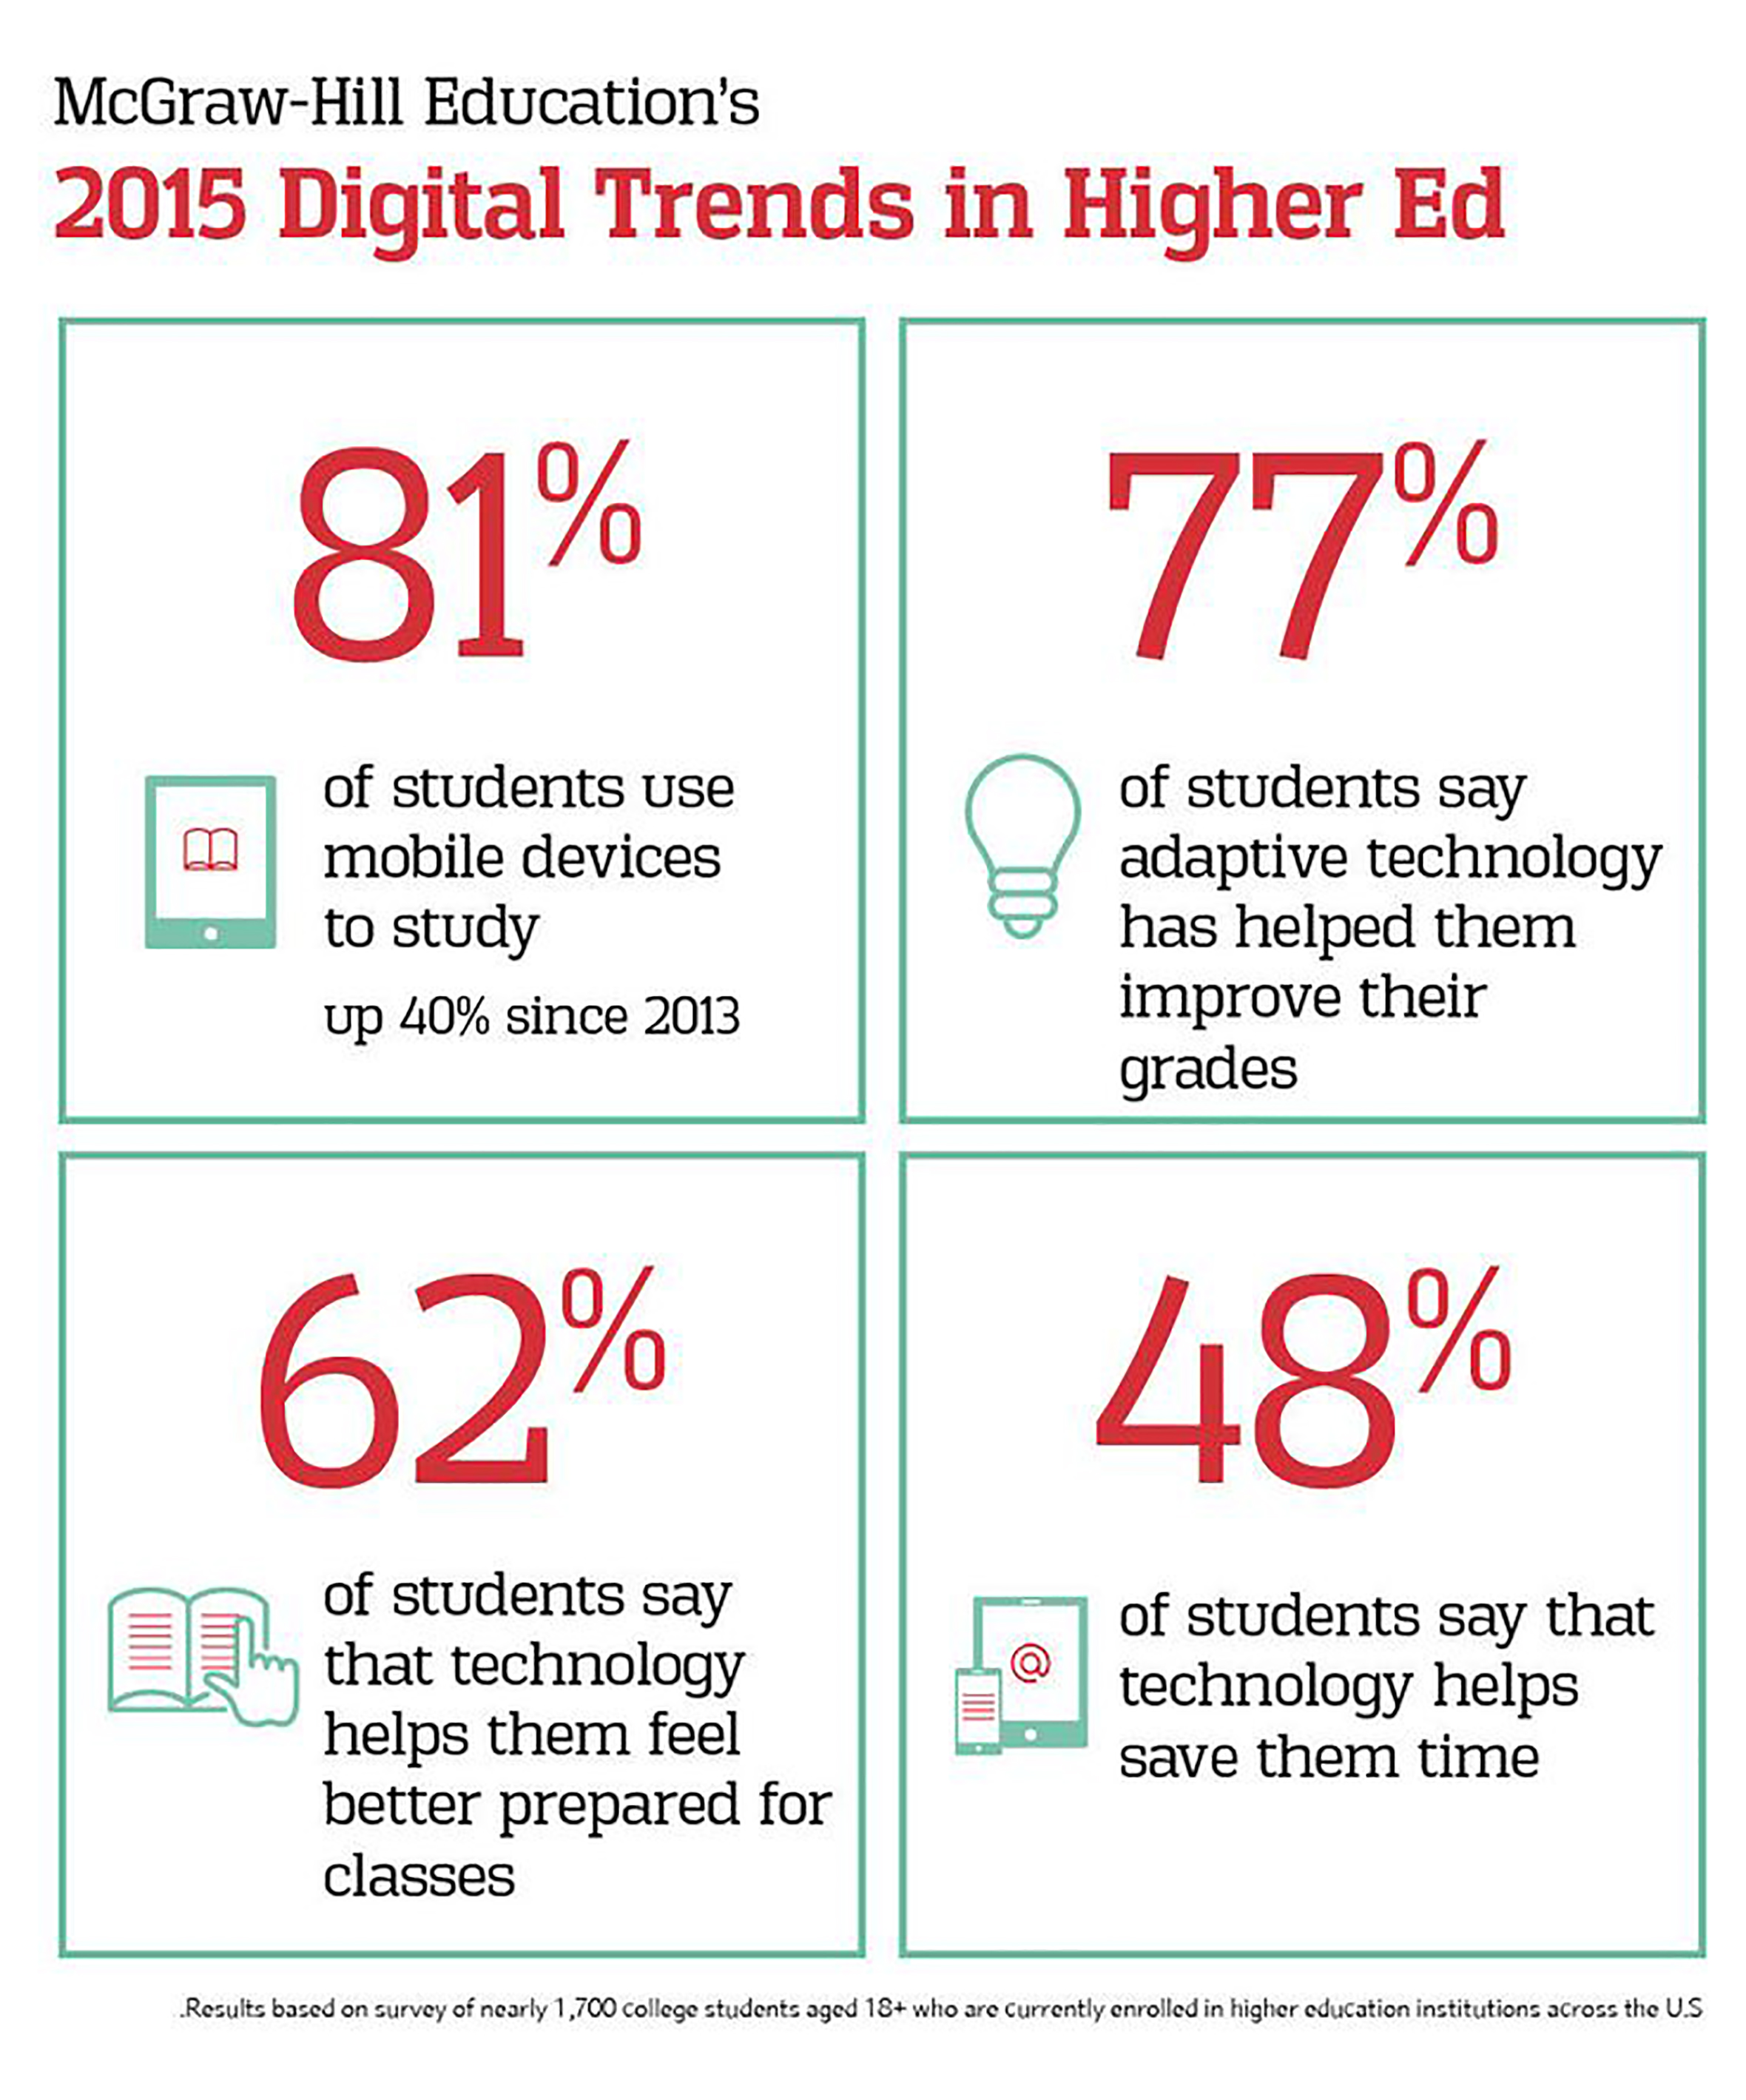 Info-graphic showing 2015 Digital Trends in Higher Ed